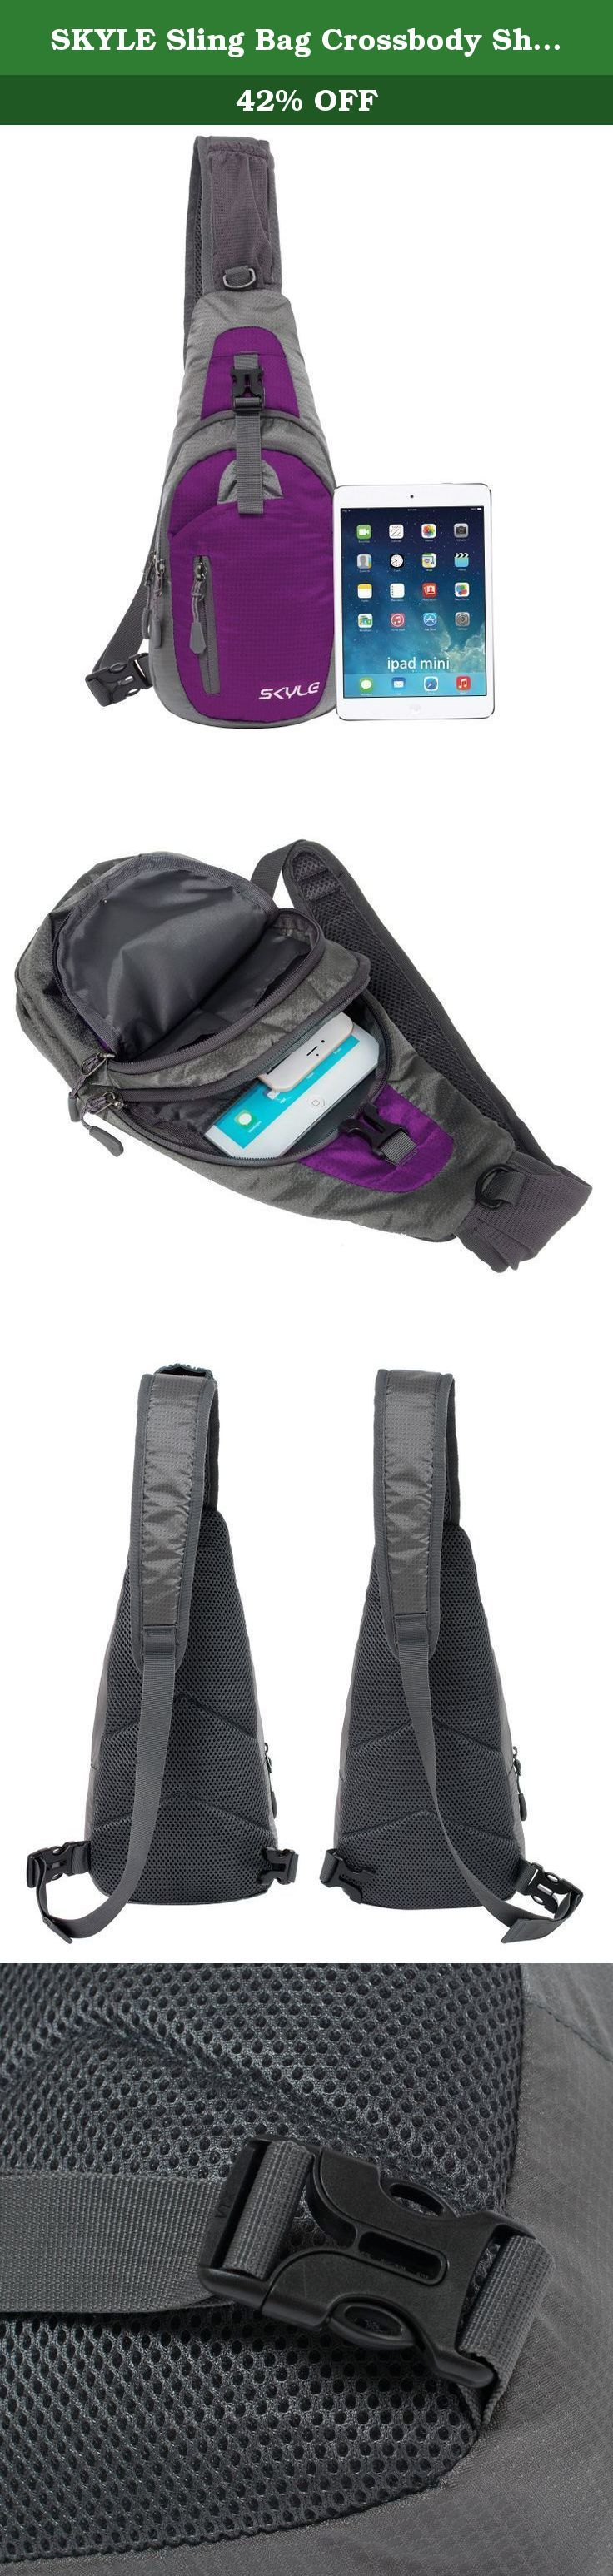 """SKYLE Sling Bag Crossbody Shoulder Chest Backpack Unbalance Gym Fanny Satchel PE. Buyer Please Note 1) Color: Due to the brightness difference among monitors, there will be slight color difference. 2) Size: a) Interior Size: Measurement on photo is about the exterior size. For your reference, the main compartment fit tablets up to 8.4 inches. b) Strap Bag: The bag on the shoulder strap fit phone up to size 4.7"""". For bigger sized phone, please store inside main compartments. c) Fit Body…"""